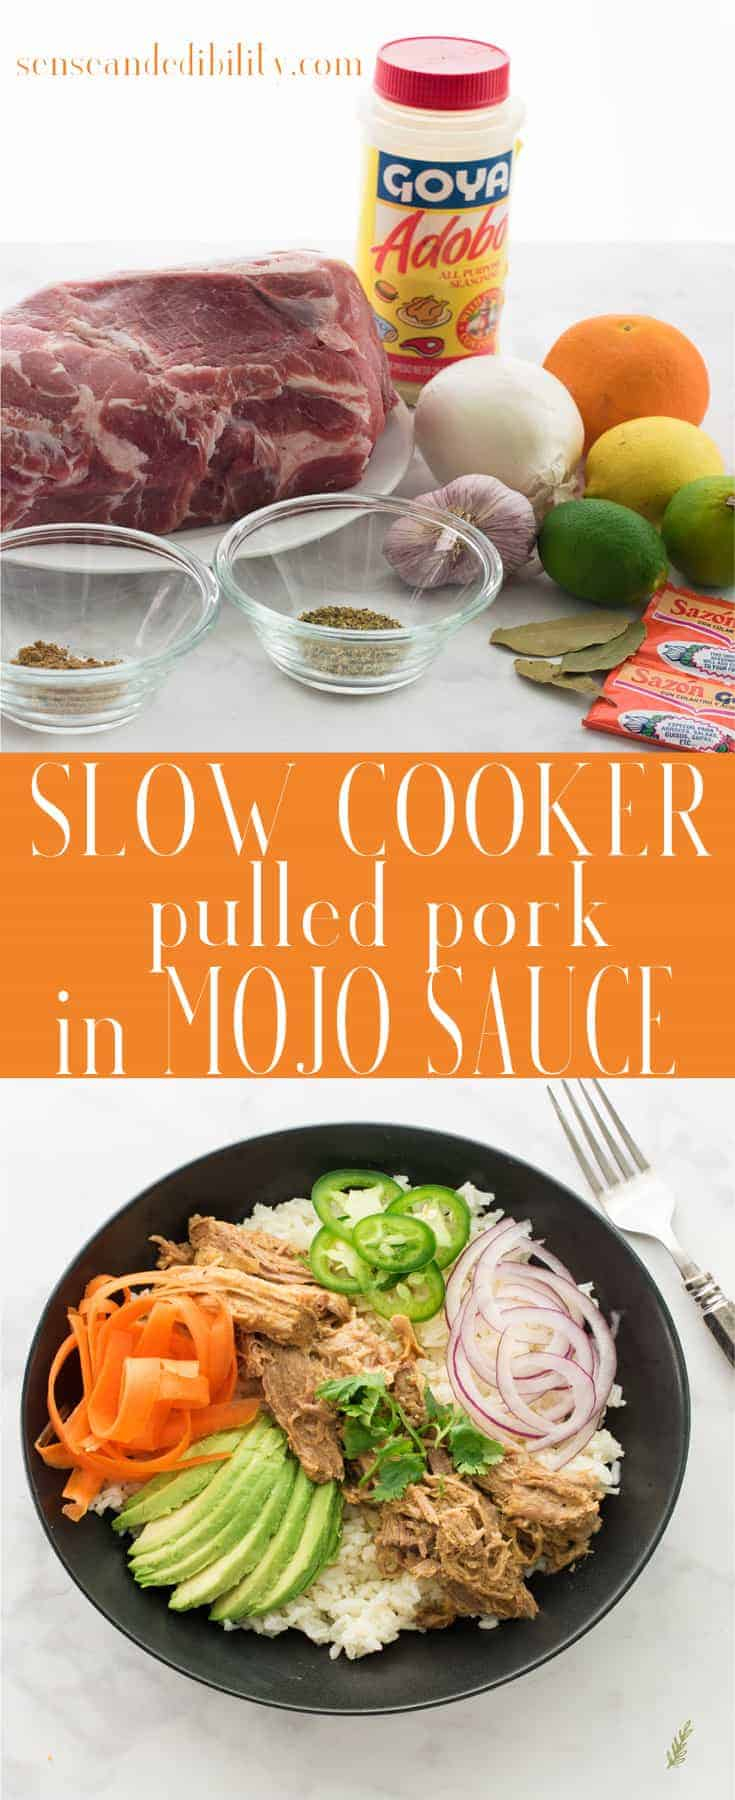 Let your slow cooker do all the work to create this flavorful Pulled Pork in Mojo Sauce recipe. Fresh citrus juice, flavorful spices, and aromatics create an easy protein which can be served dozens of ways. #pulledpork #mojosauce #slowcooker #easymeal #dinner #maindish via @ediblesense